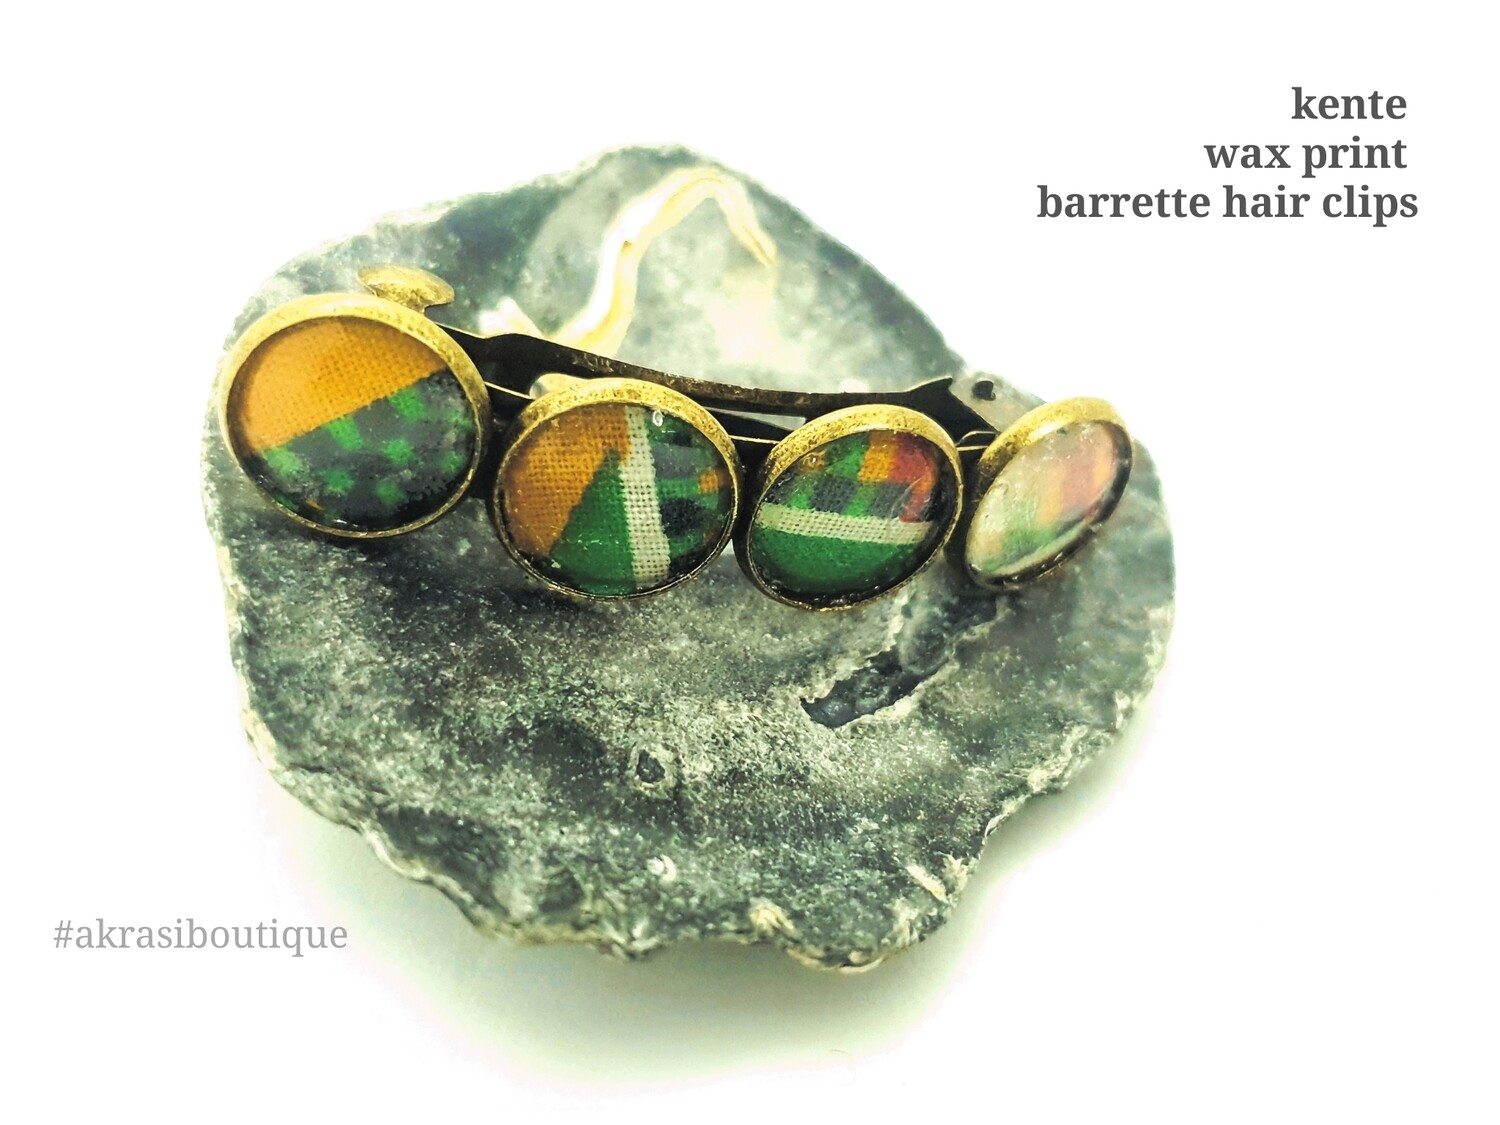 Kente green and yellow barrette hair clip in bronze